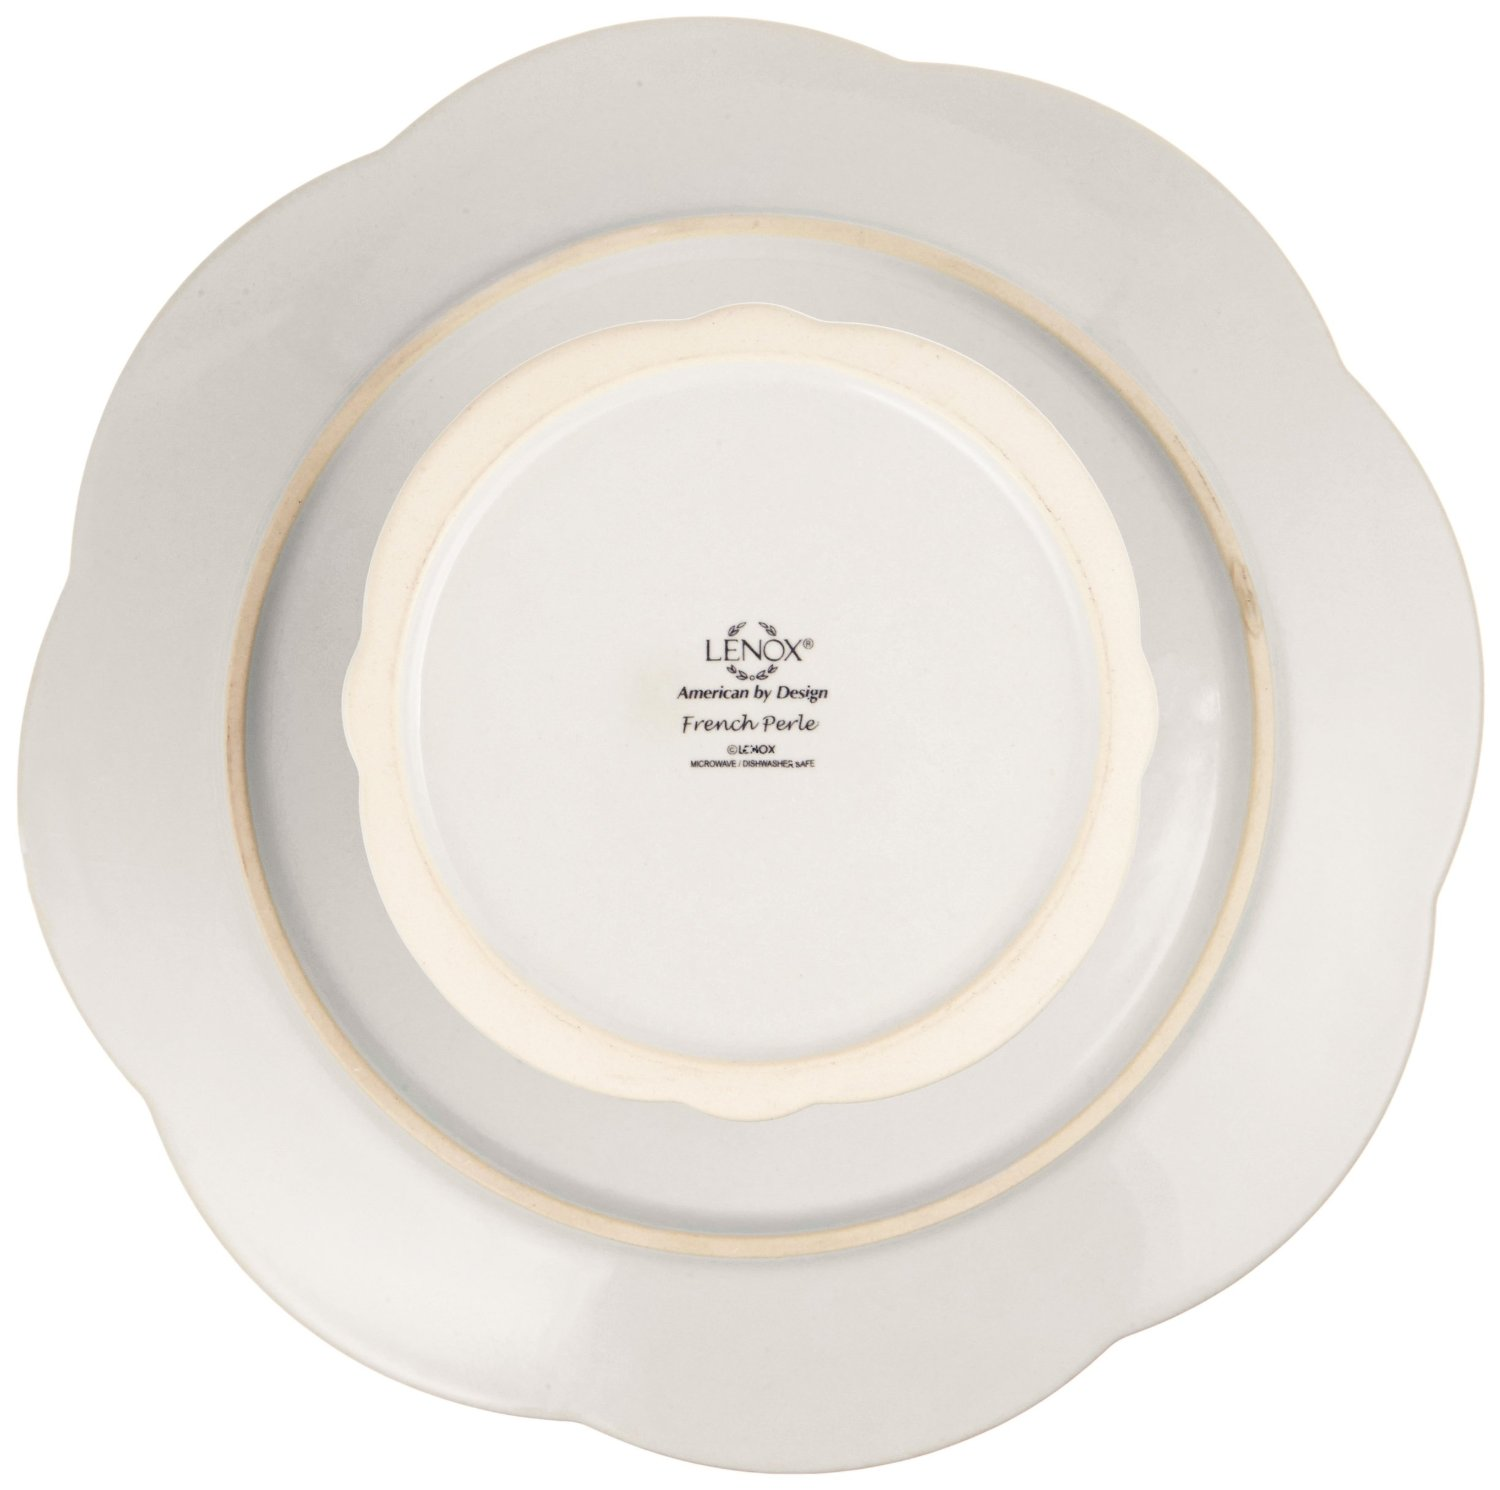 Lenox French Perle Pedestal Cake Plate Medium White